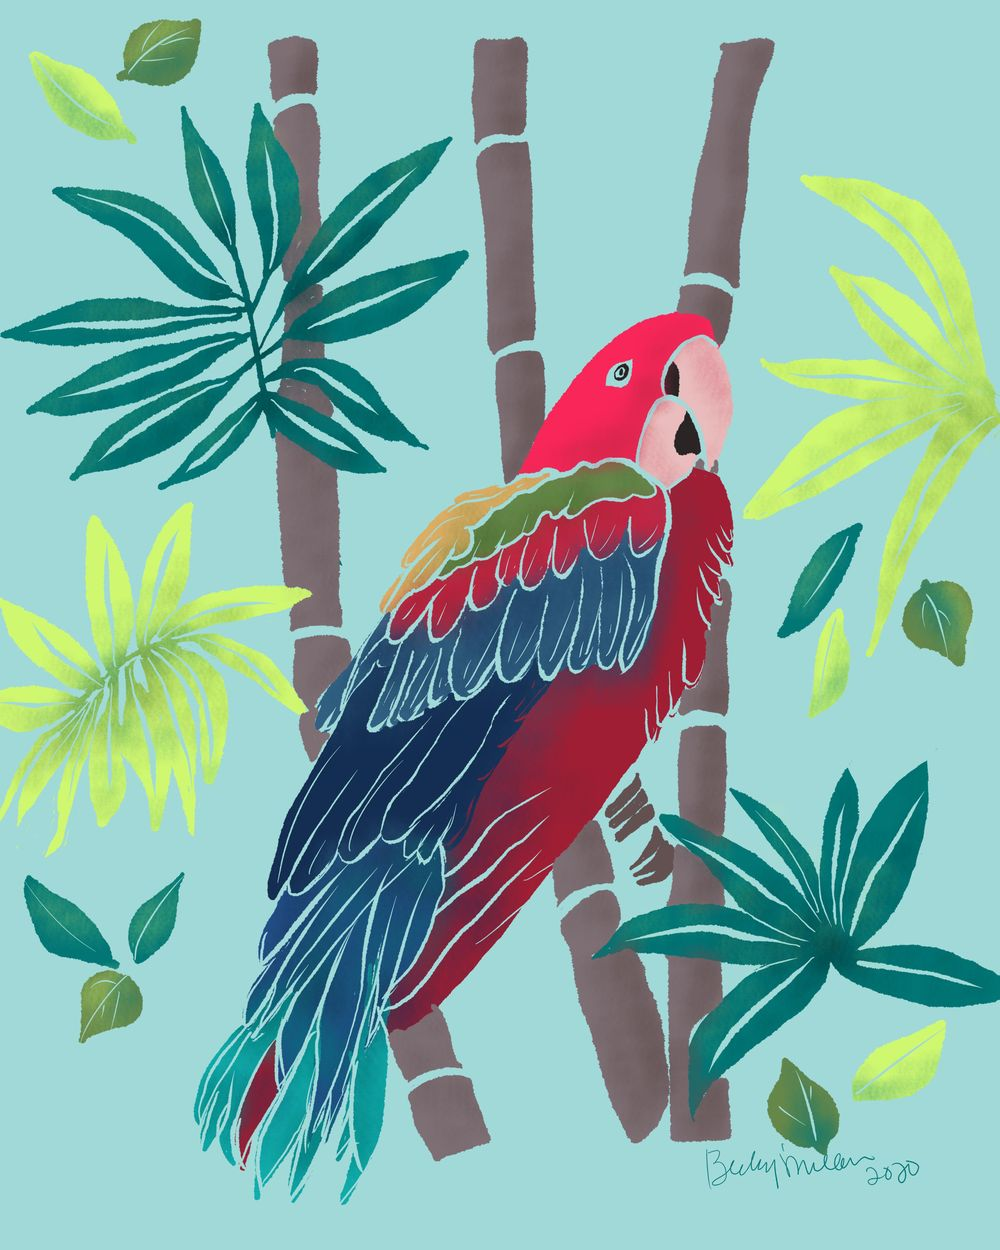 Feathers and Bamboo - image 1 - student project